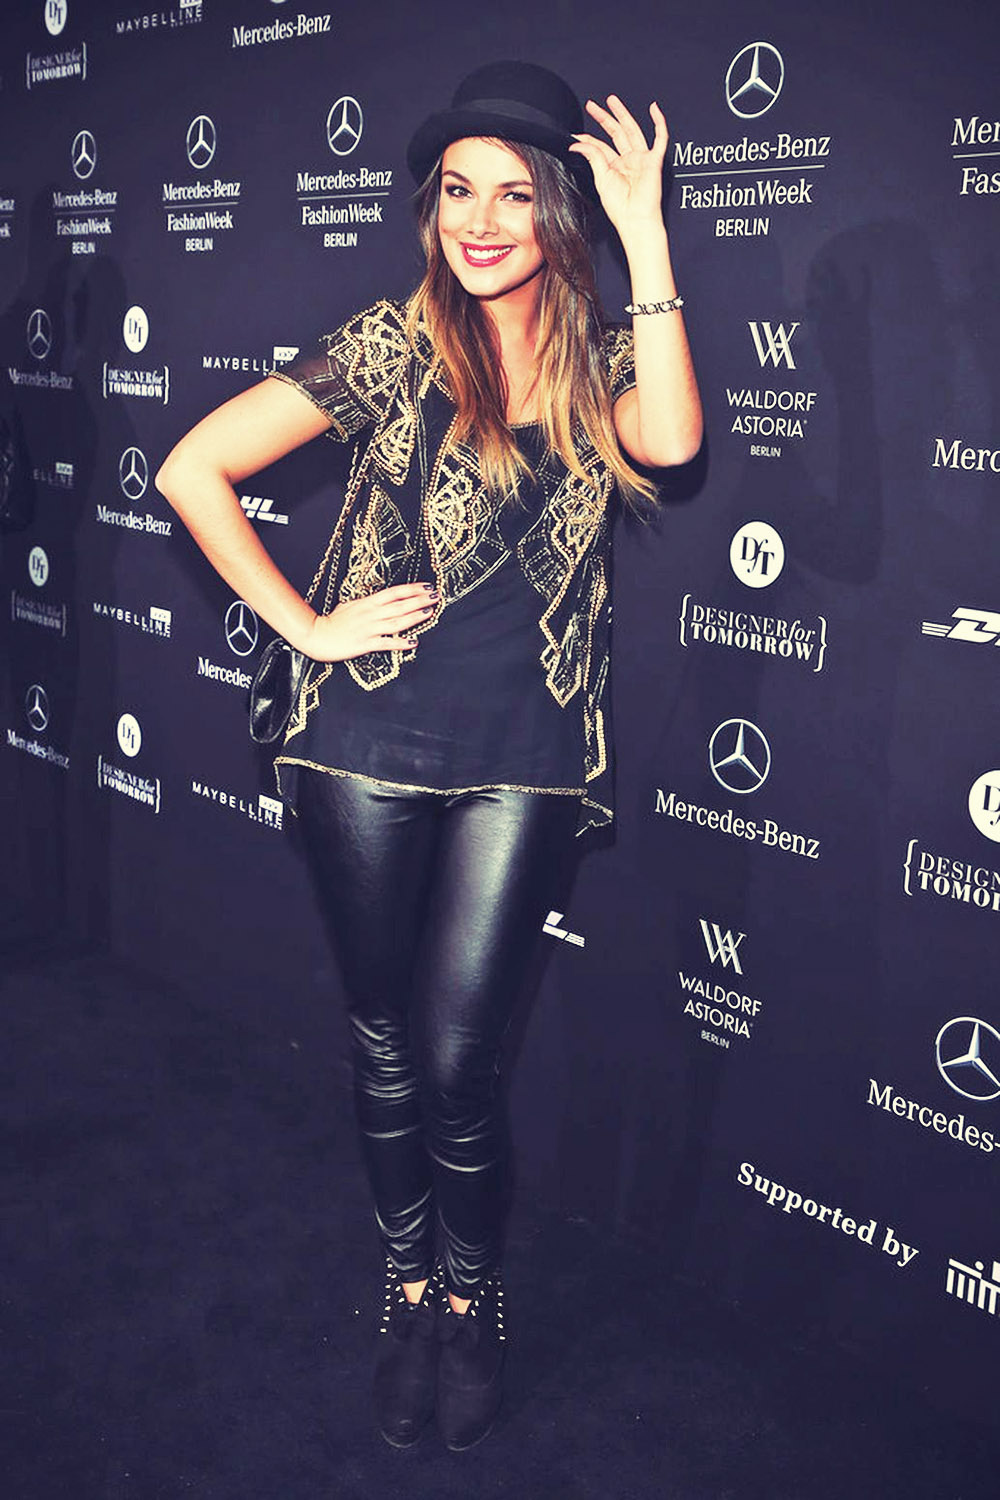 Janina Uhse attends Mercedes-Benz Fashion Week Berlin 2013